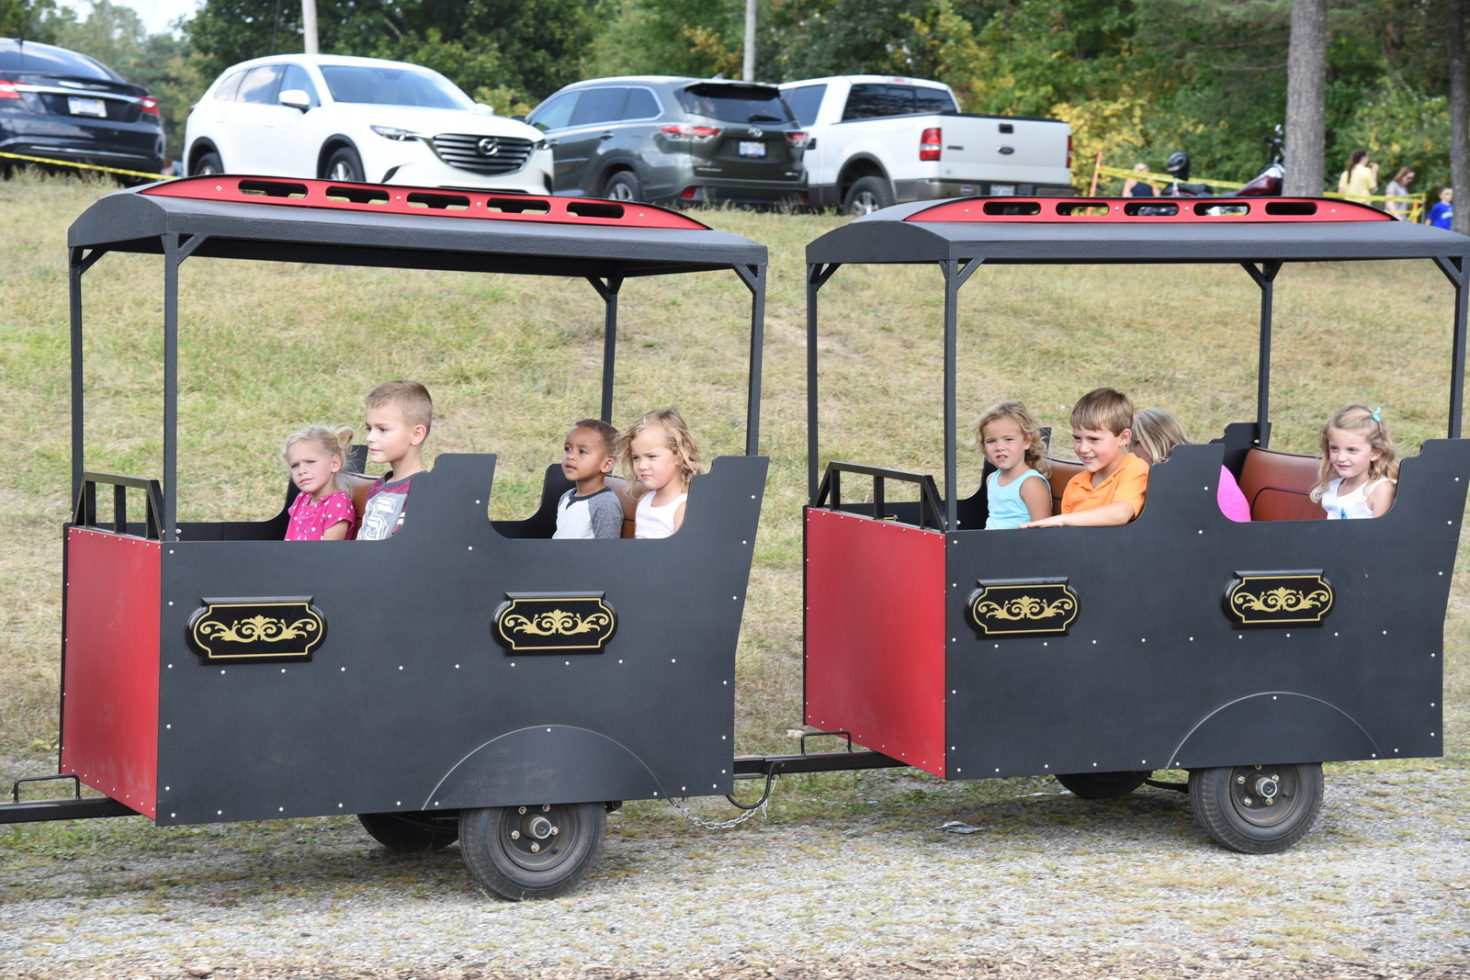 Kids on 2 different train cars of trackless train